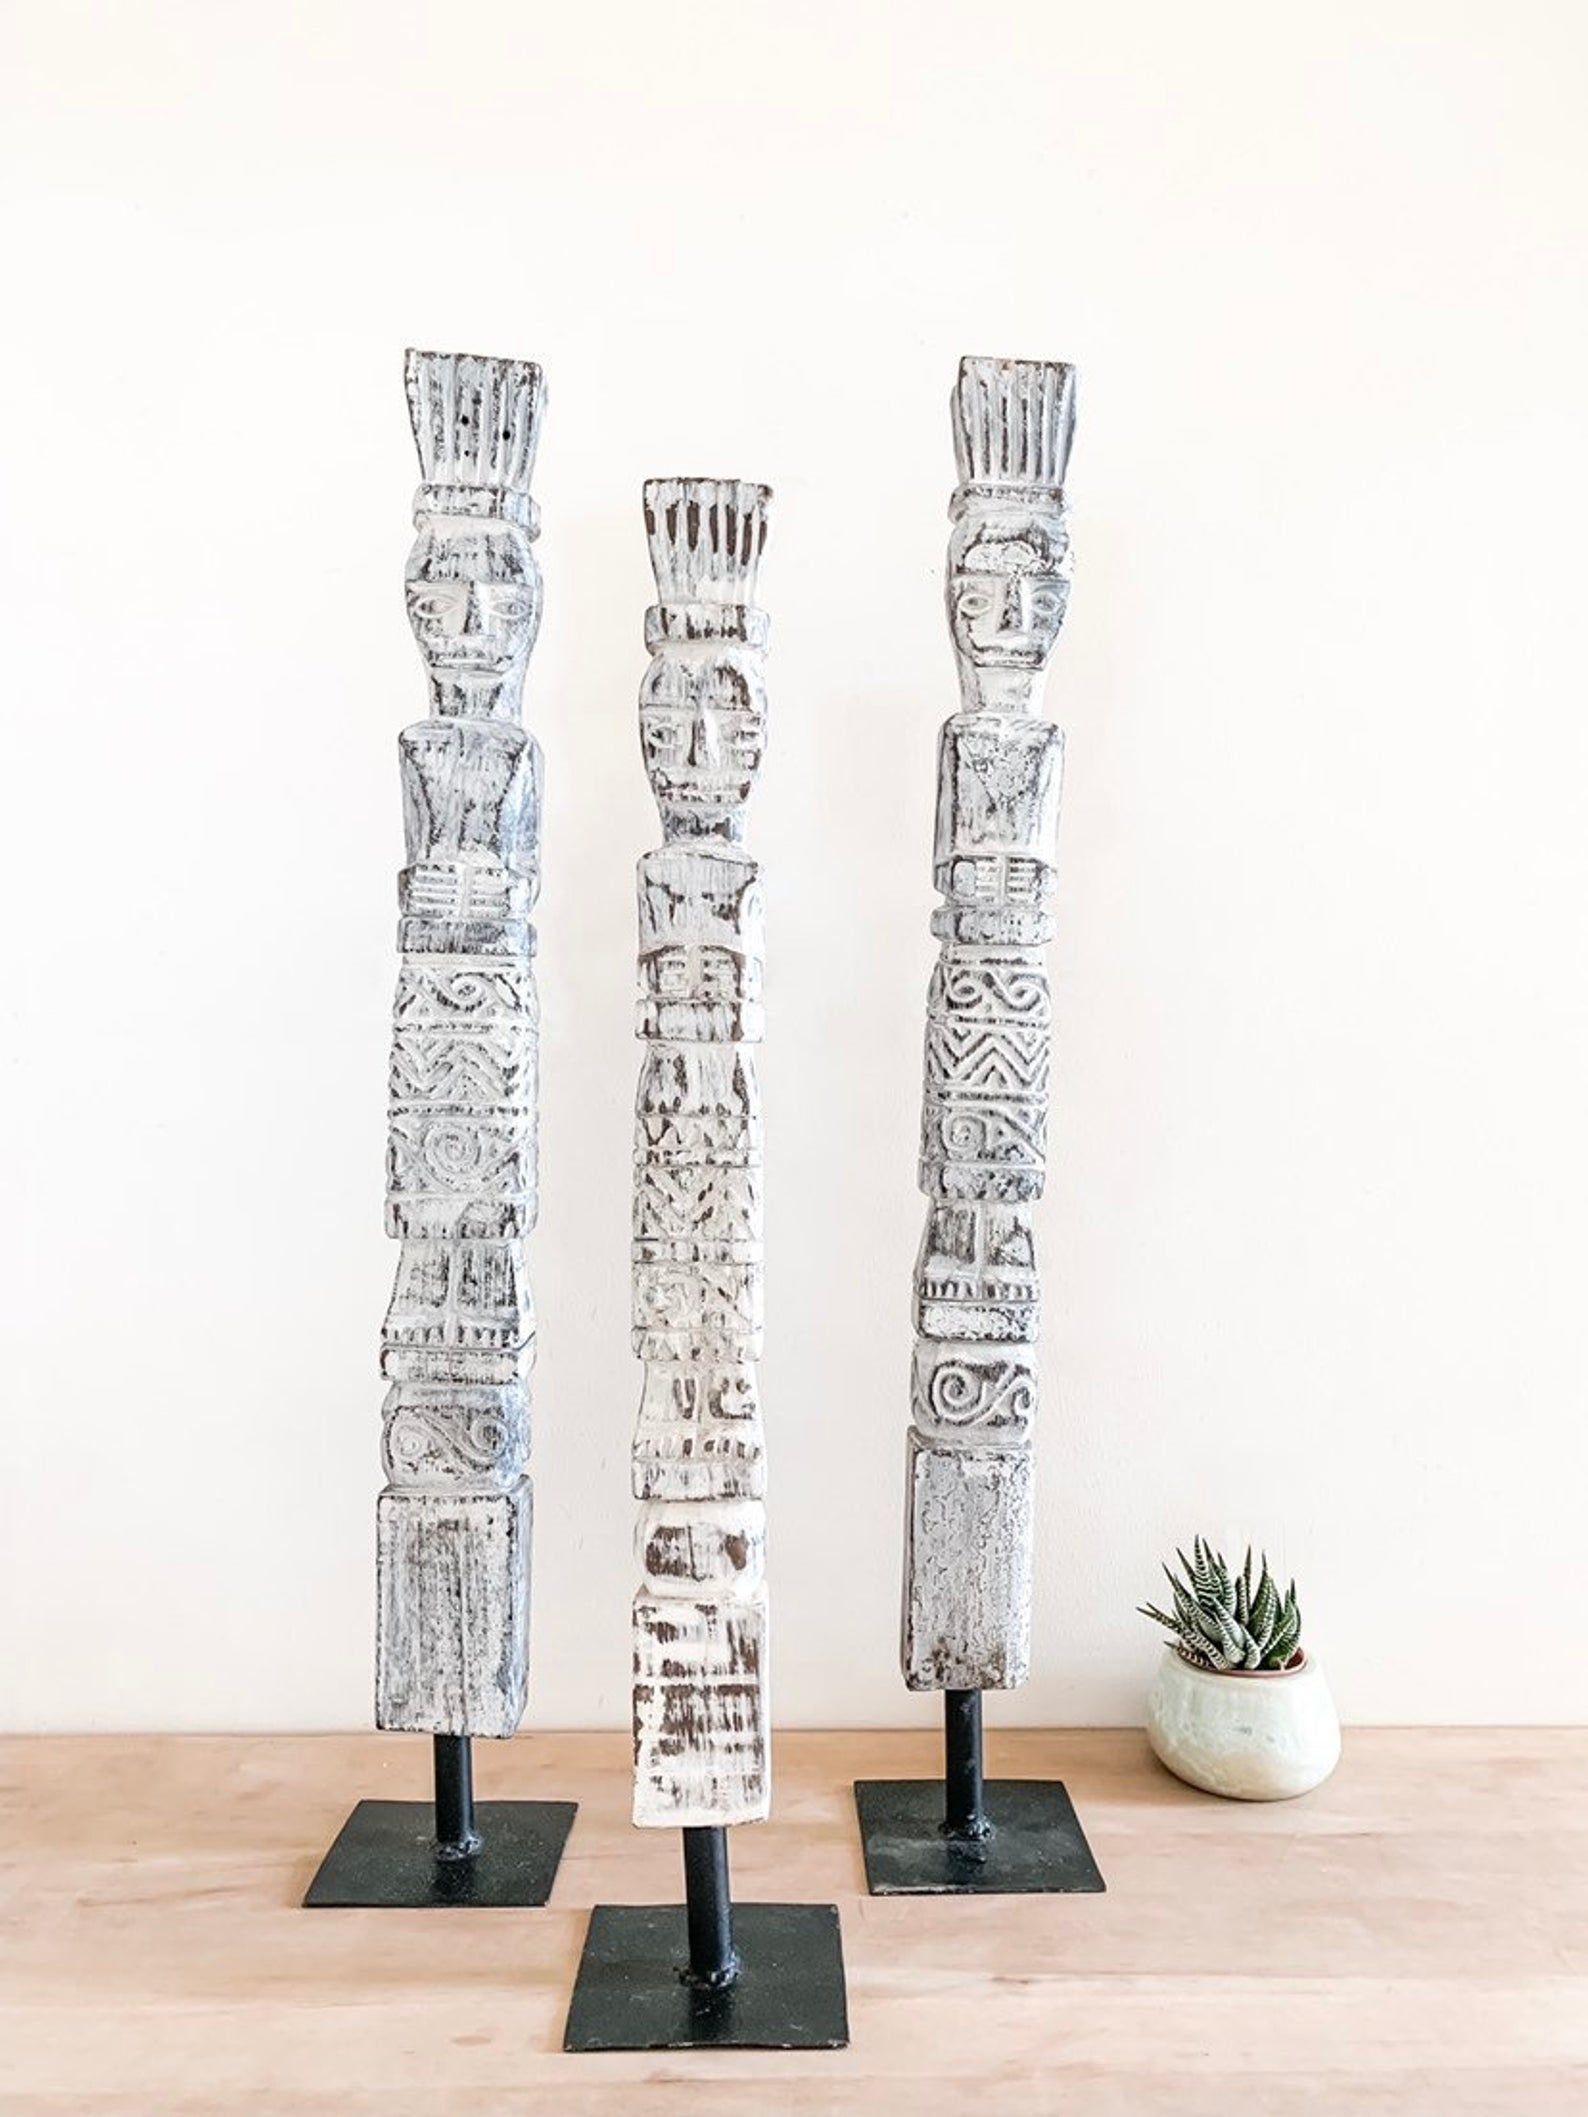 Primitive timber statues from Etsy